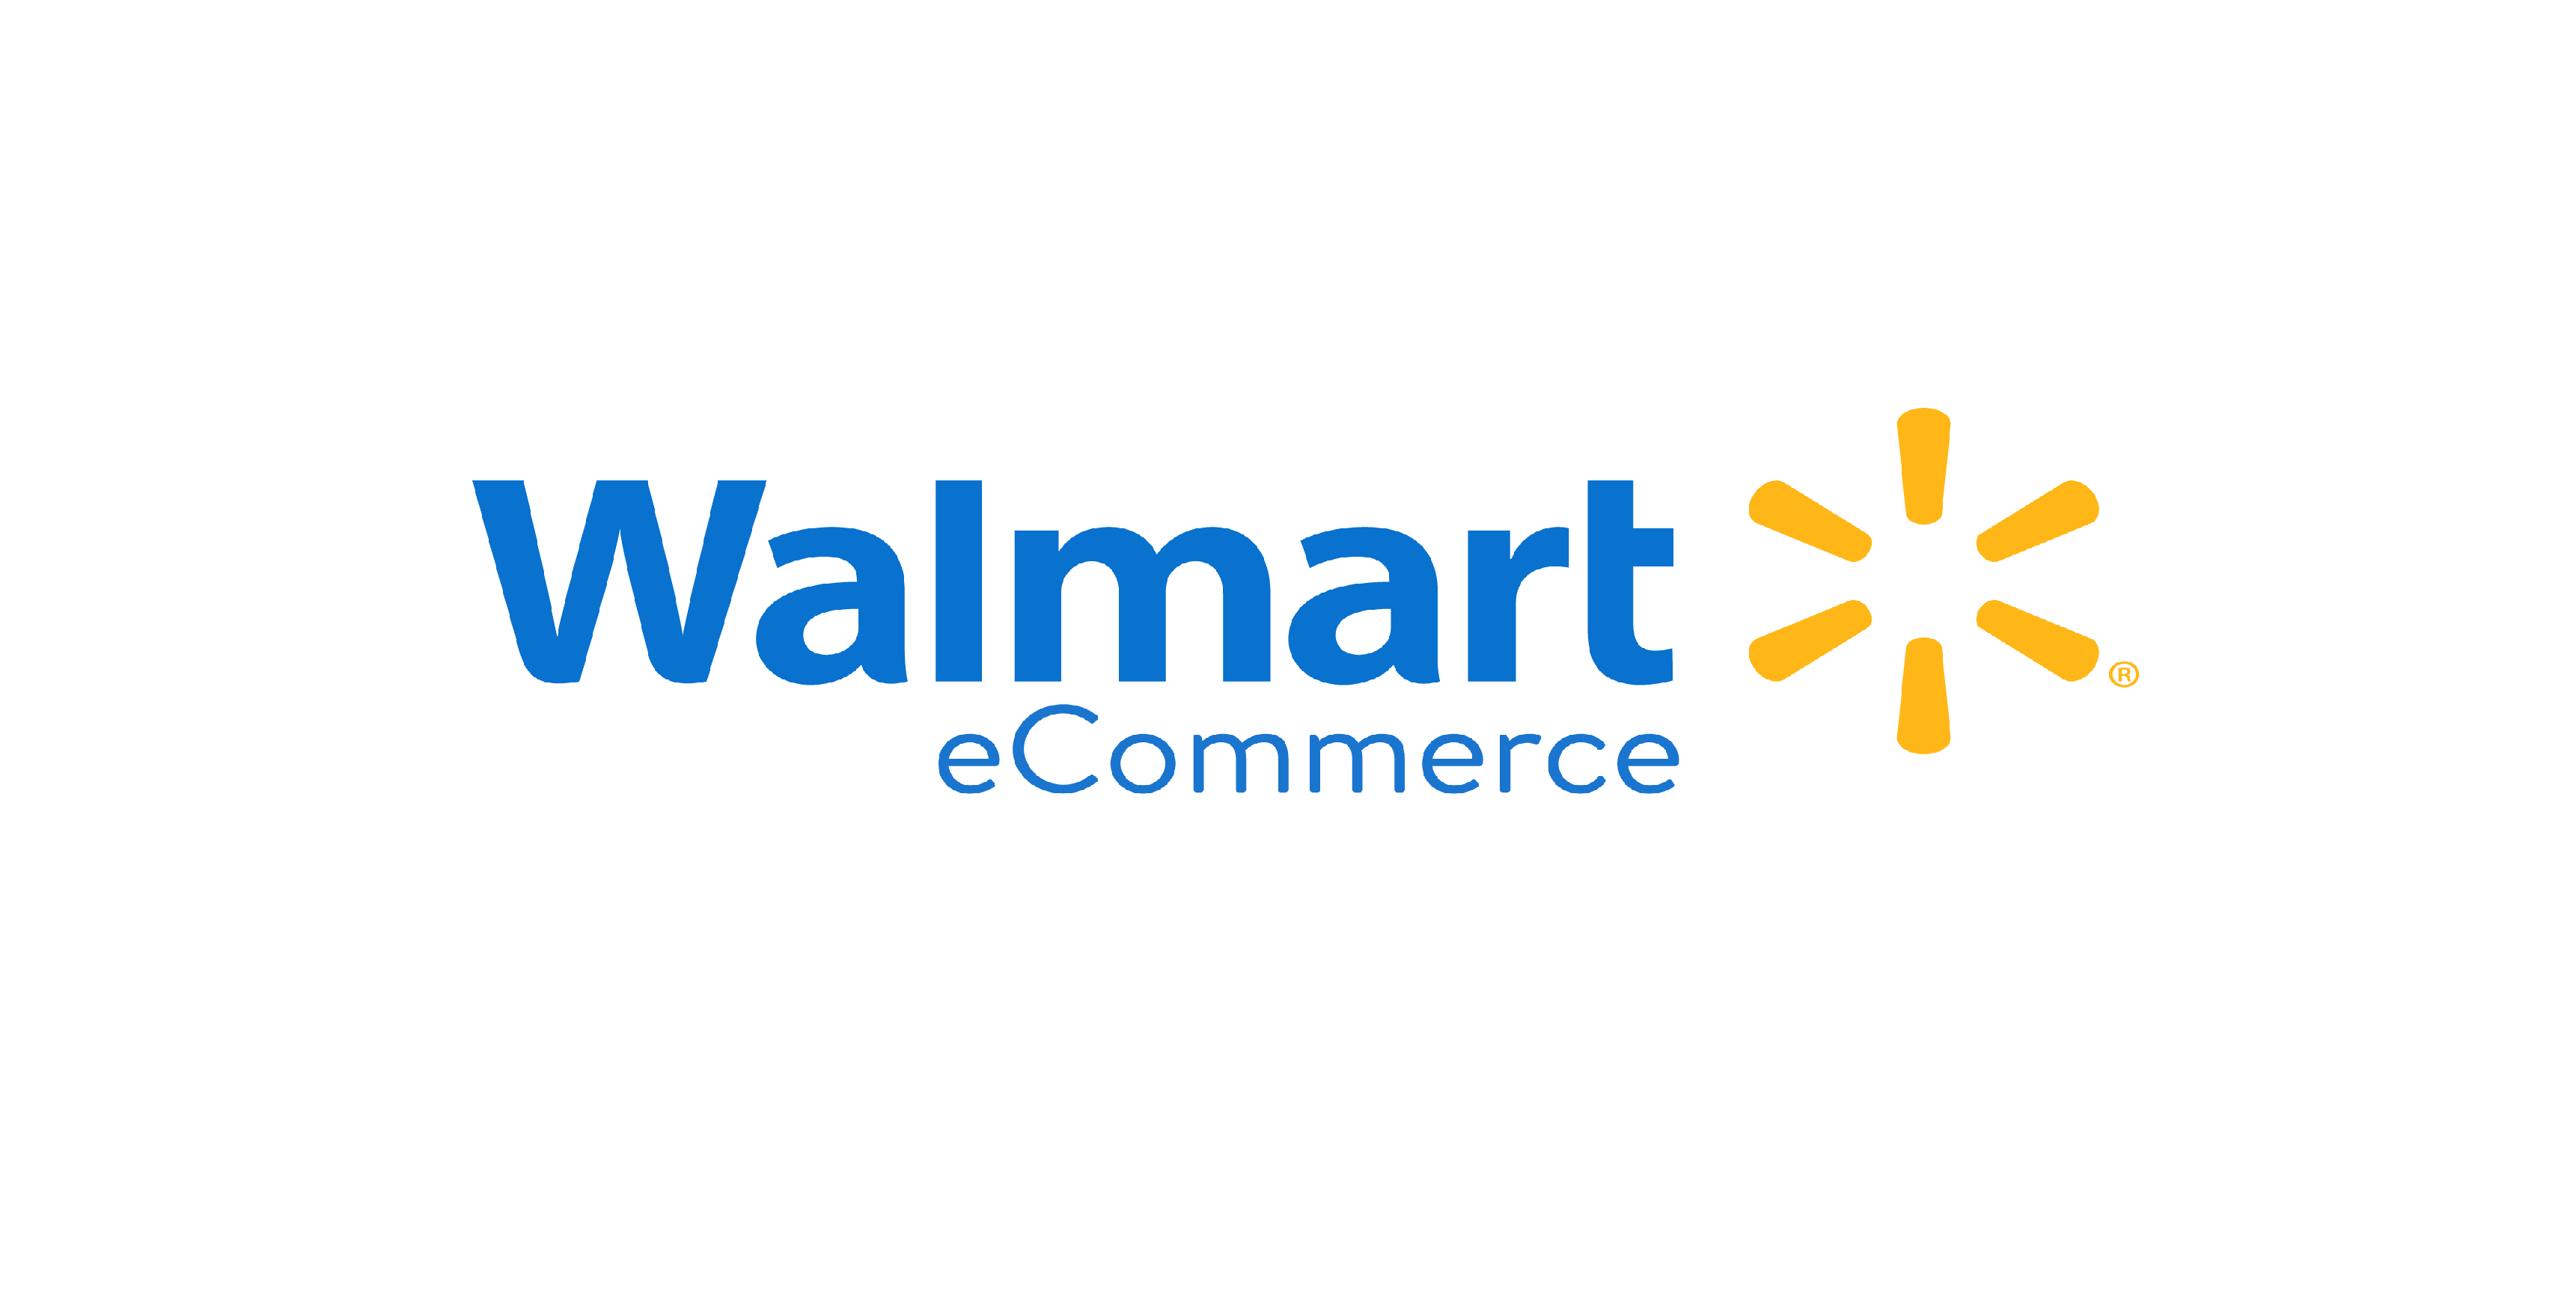 Walmart eCommerce in blue font with yellow logo to the right